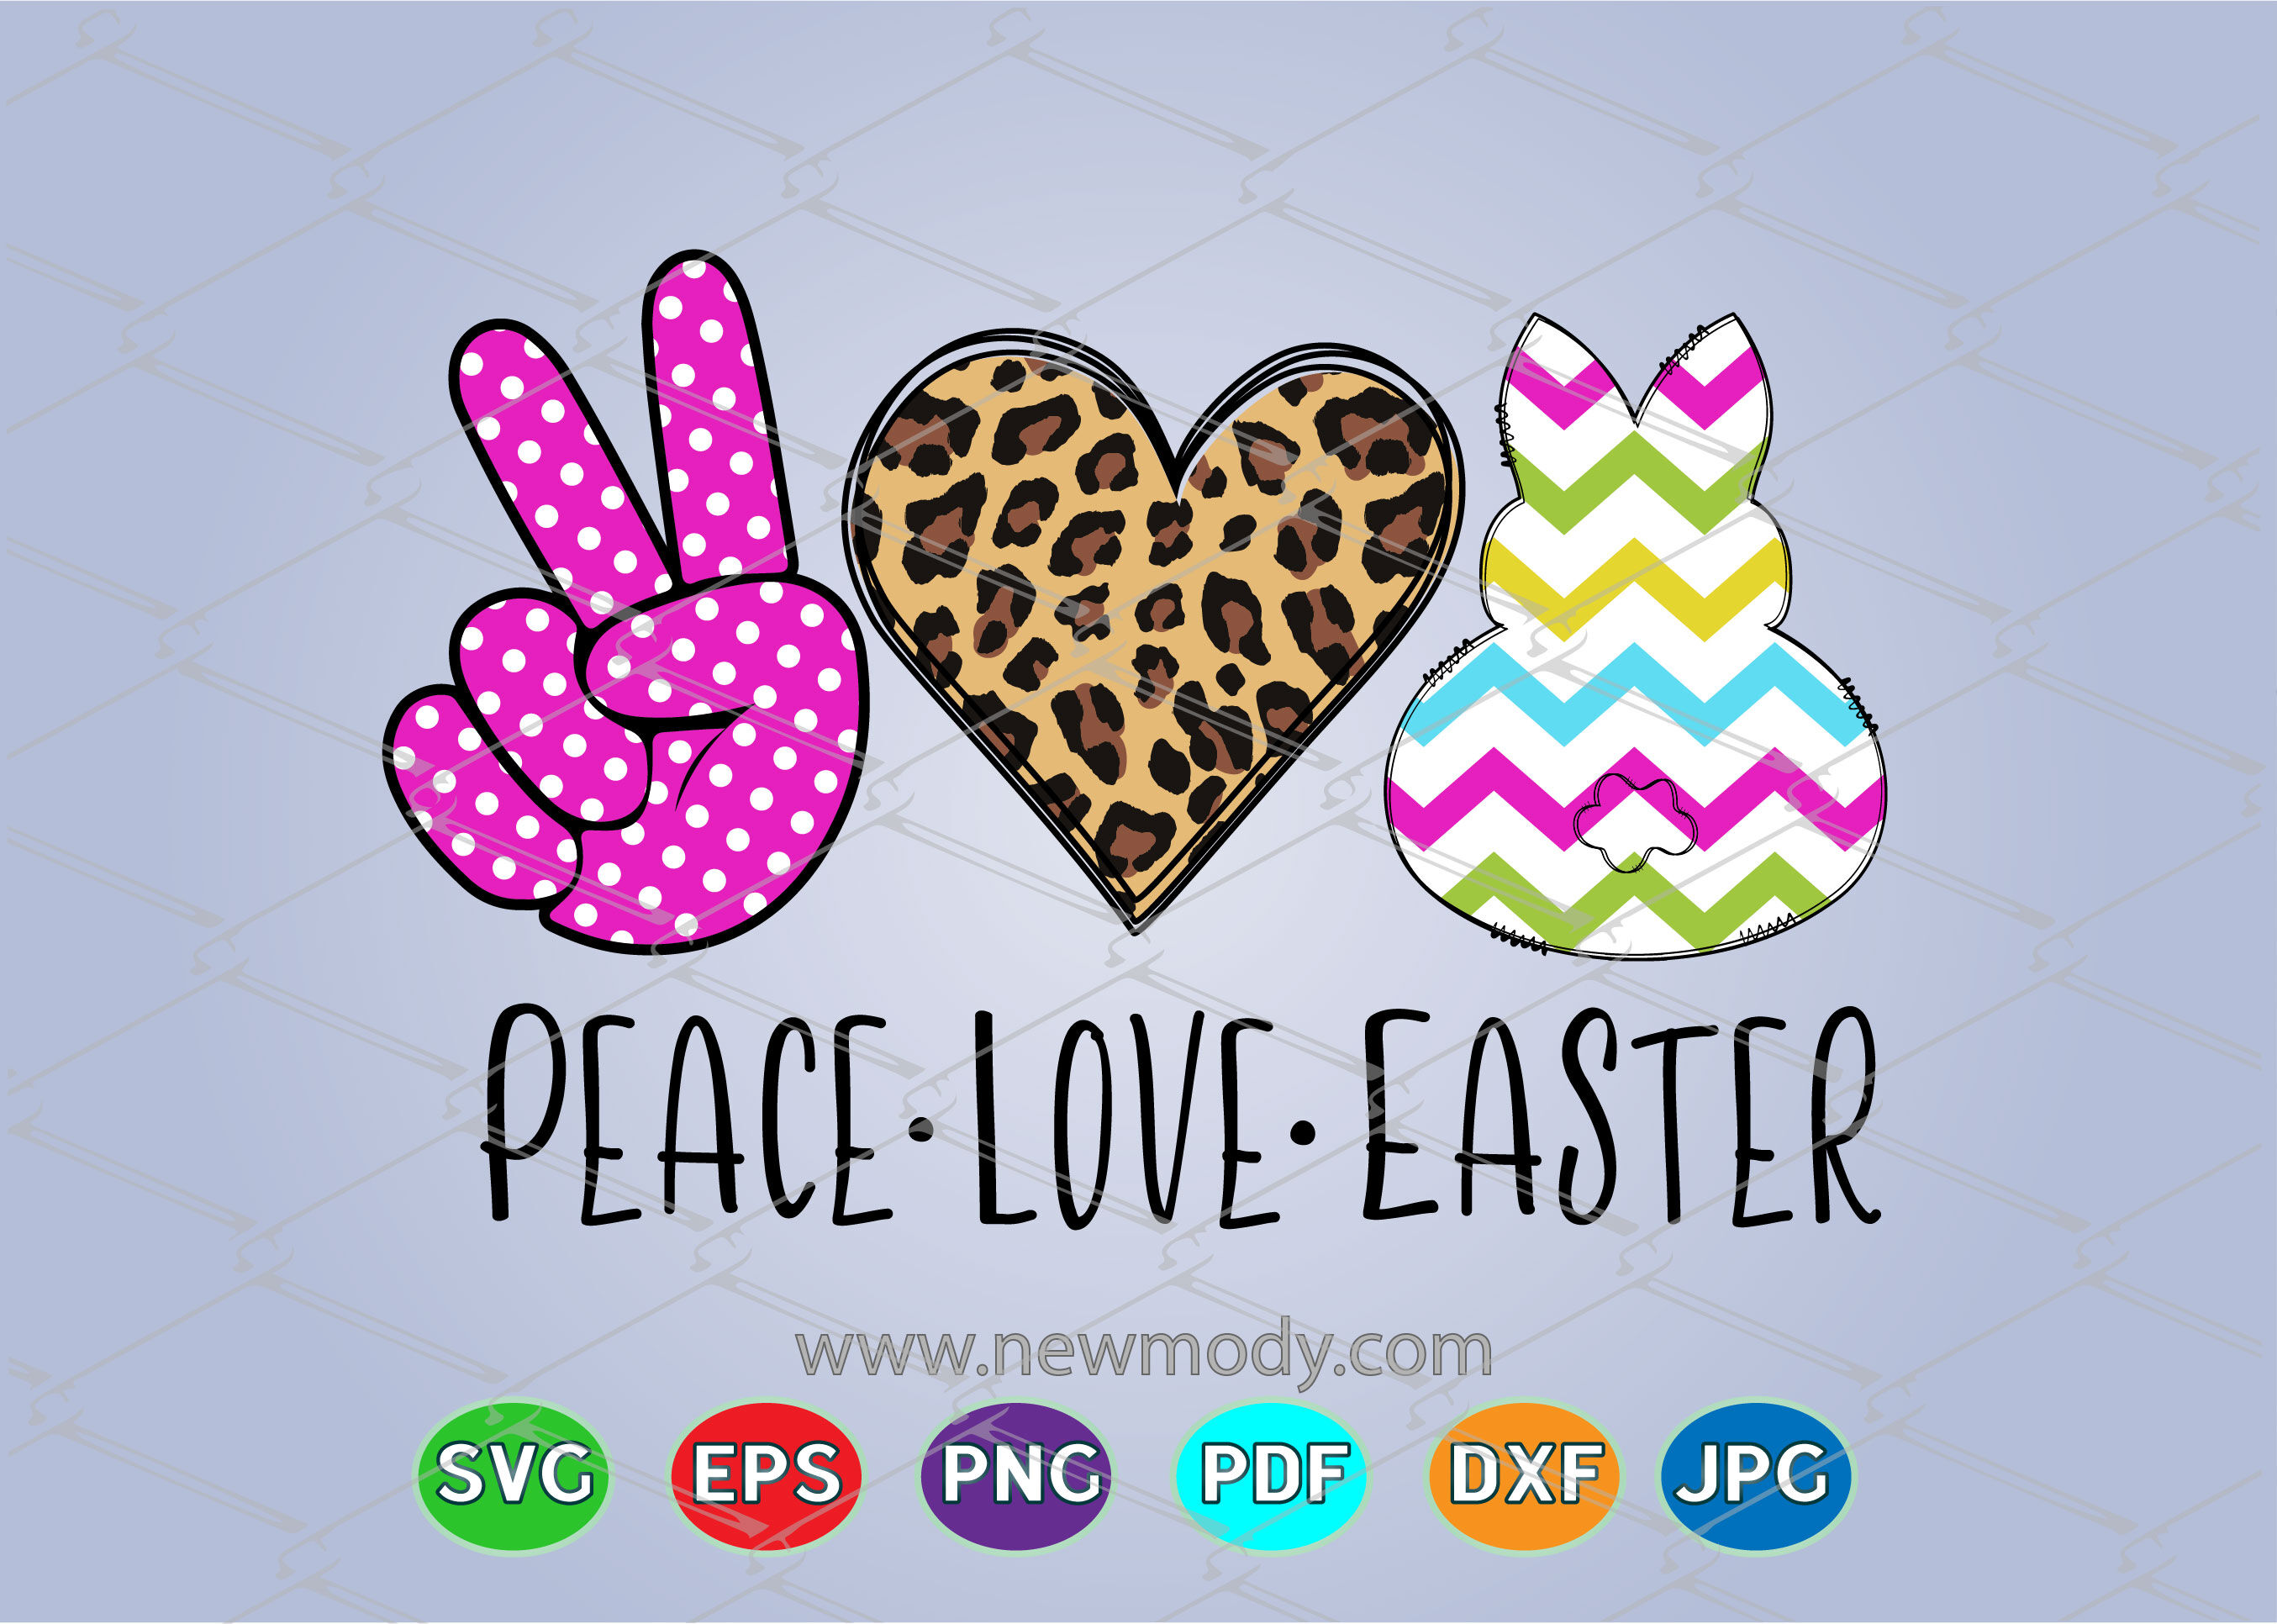 Peace Love Easter Svg Cut Files Peace Love Svg By Amittaart